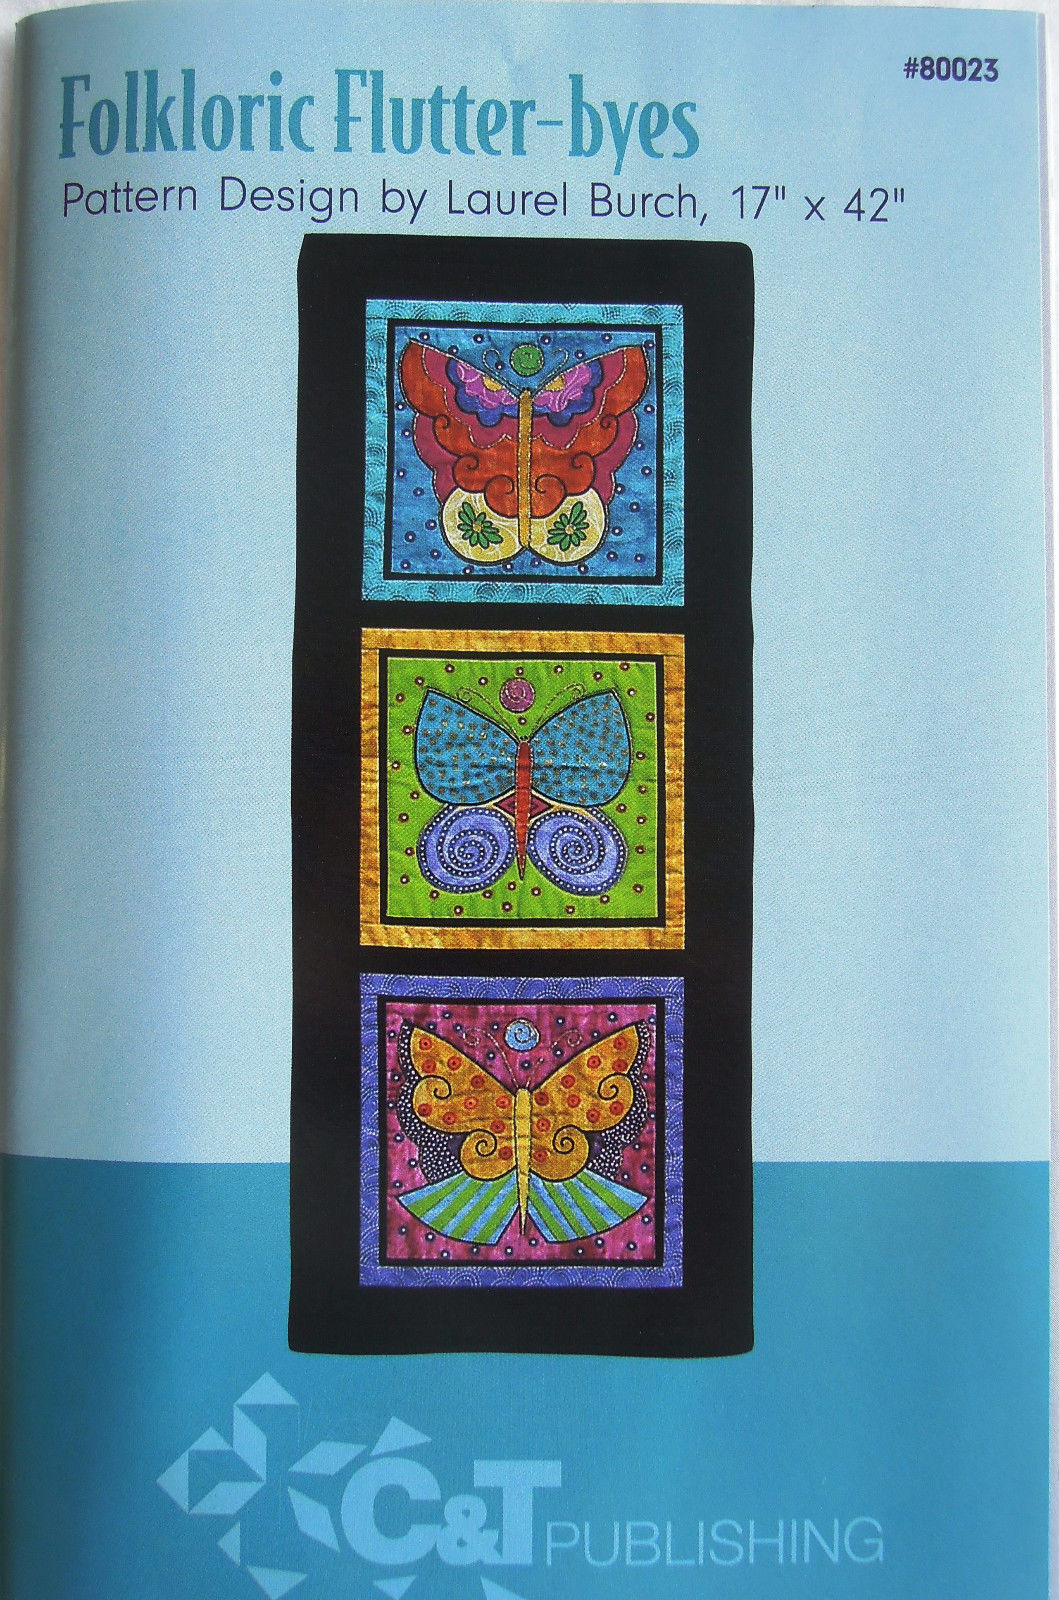 only $2.99: Folkloric Flutterbyes pattern by Laurel Burch (click!)